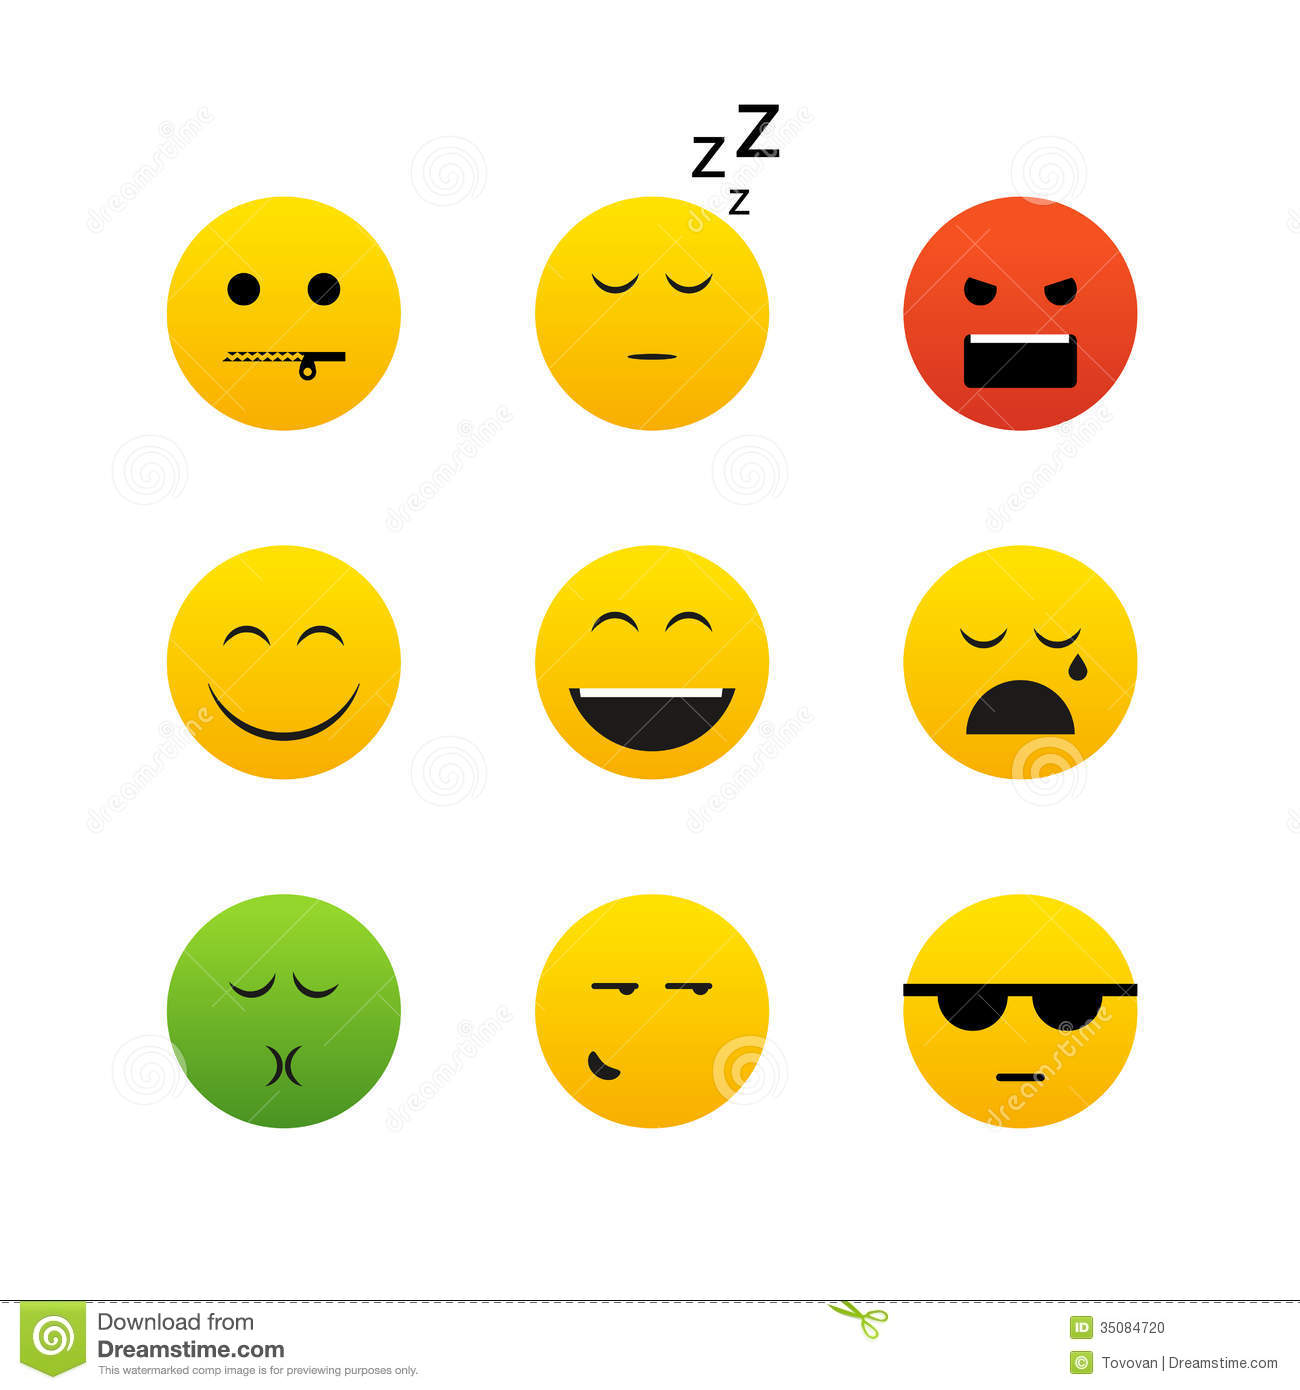 Worksheets Emotion Faces different emotion faces stock photo image 35084720 faces